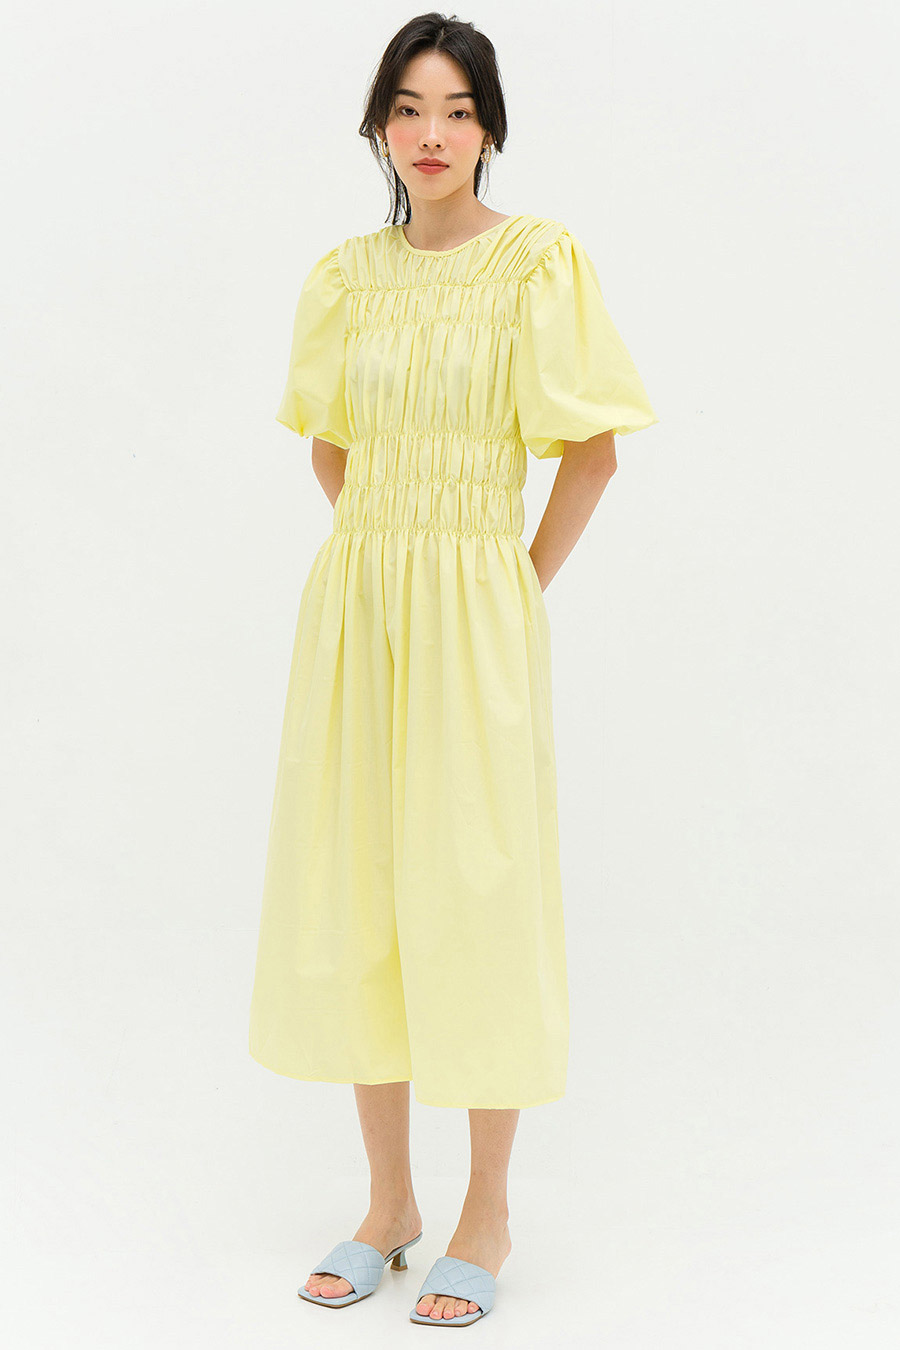 *RESTOCKED* BAUME DRESS - BUTTERCUP